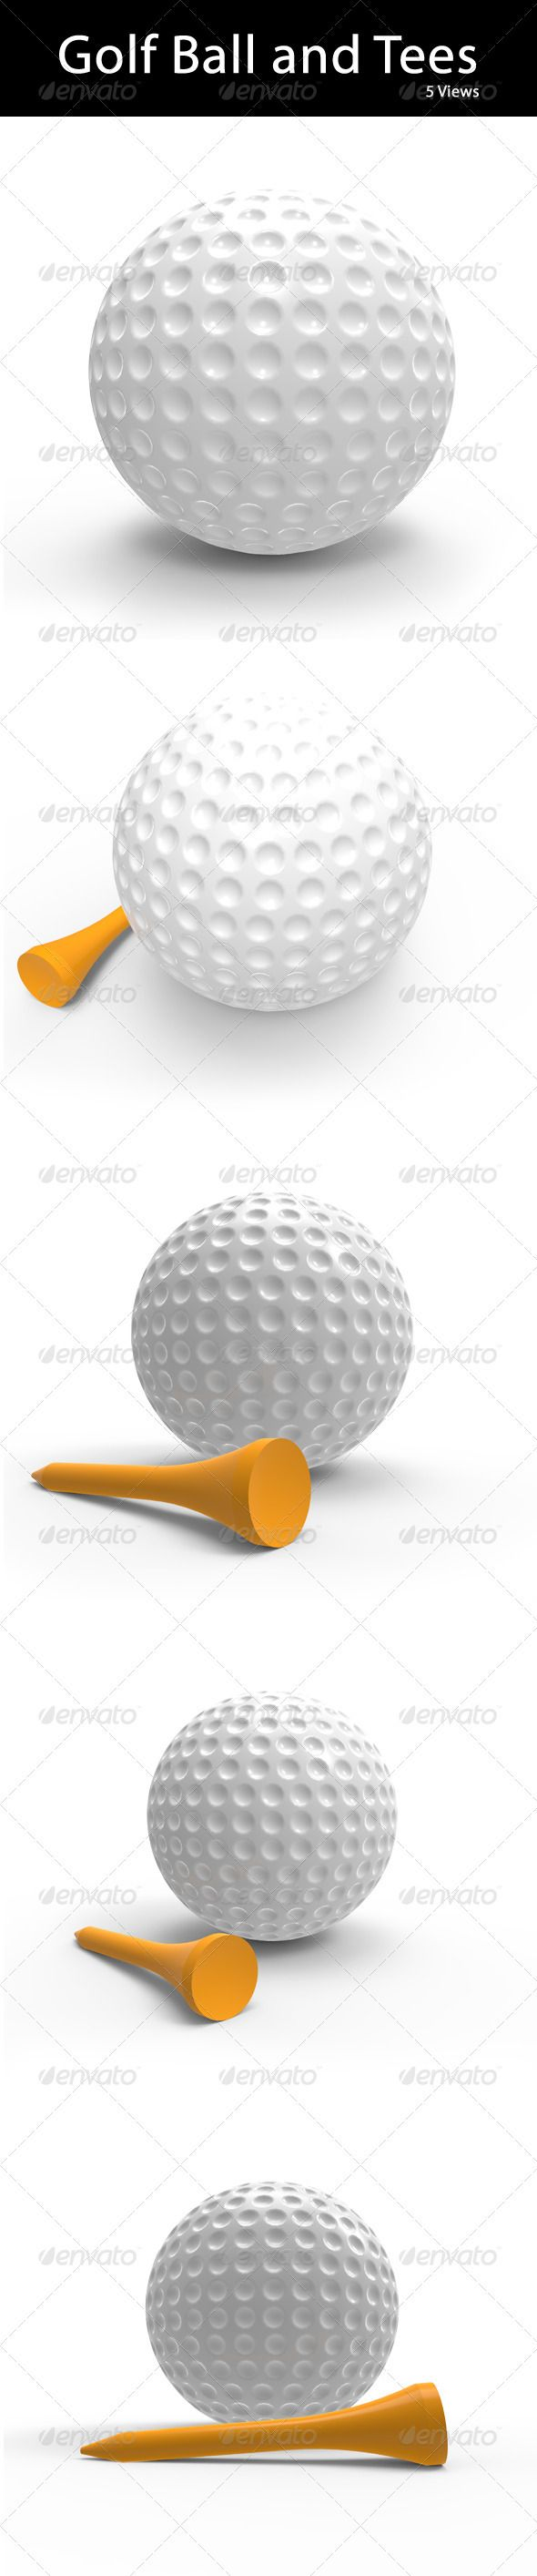 Golf Ball With Tee In Orange Color 3d Rendered Graphics In 5 Views 3400x3400px Resolution In 100 Transparentpng Golf Ball Ball 3d Design Projects